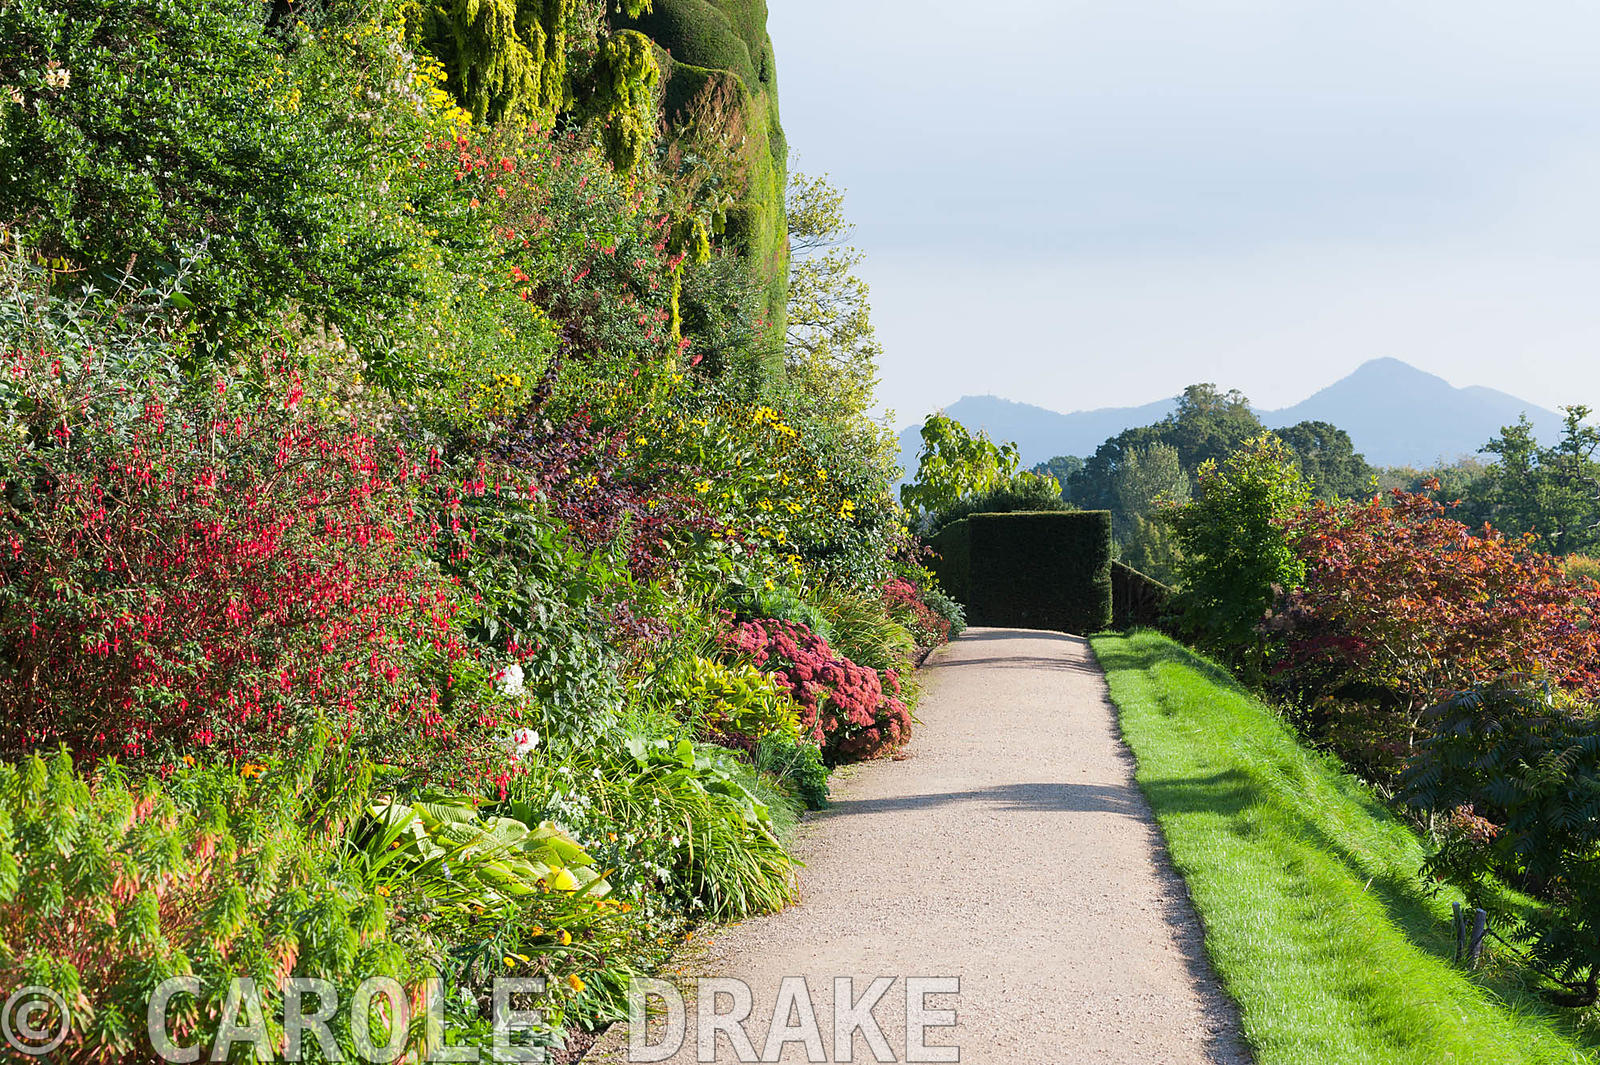 Borders on the Lower Terrace at Powis Castle Garden in autumn full of sedums, euphorbias, fuchsias and rudbeckias